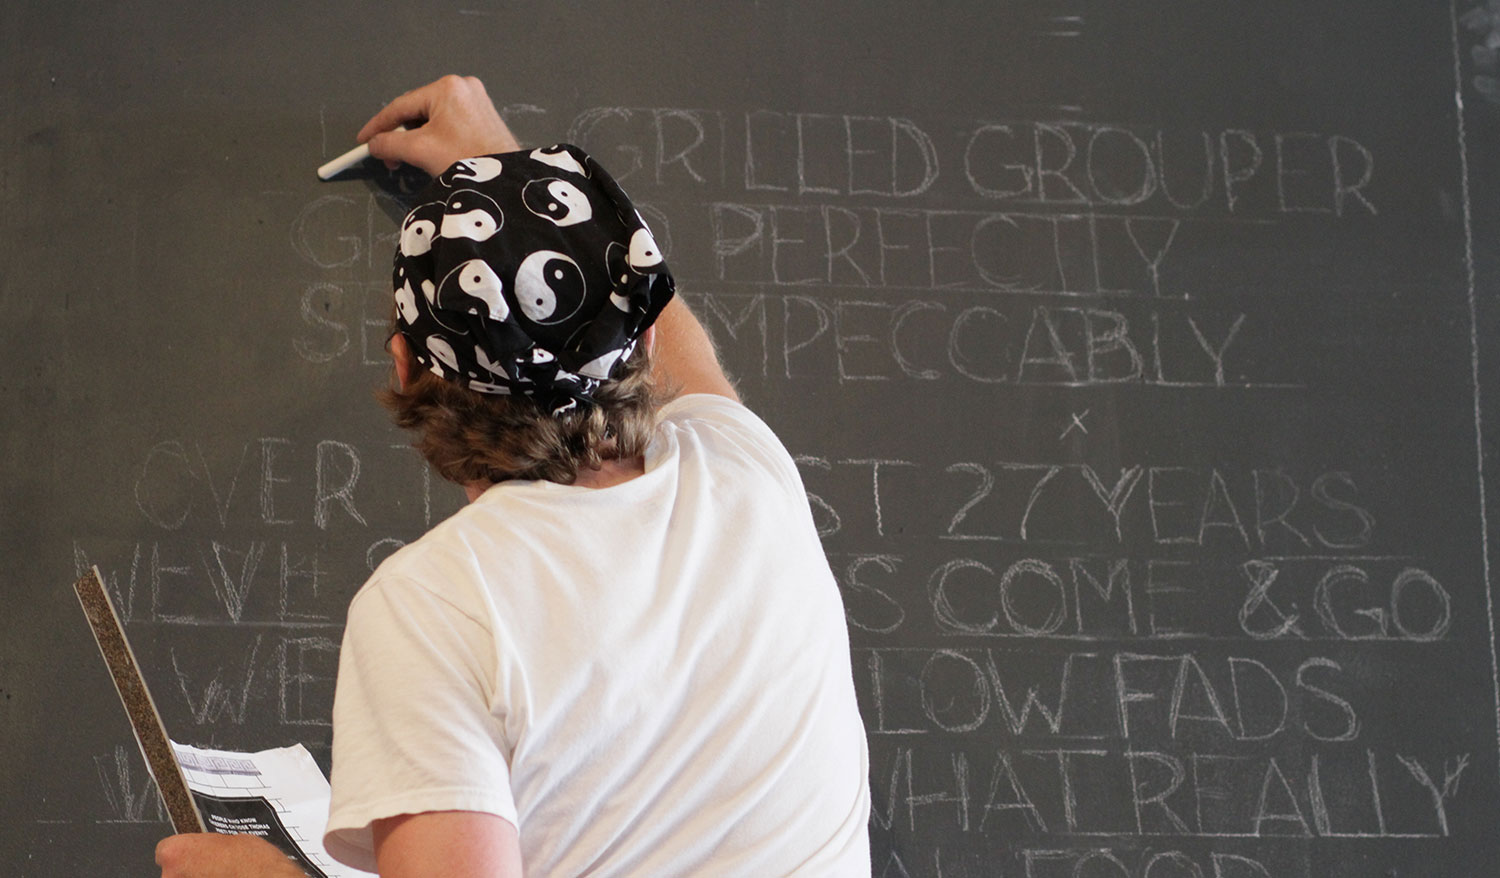 A little bit of chalkboard copy for the Thomas Preti pop-up.